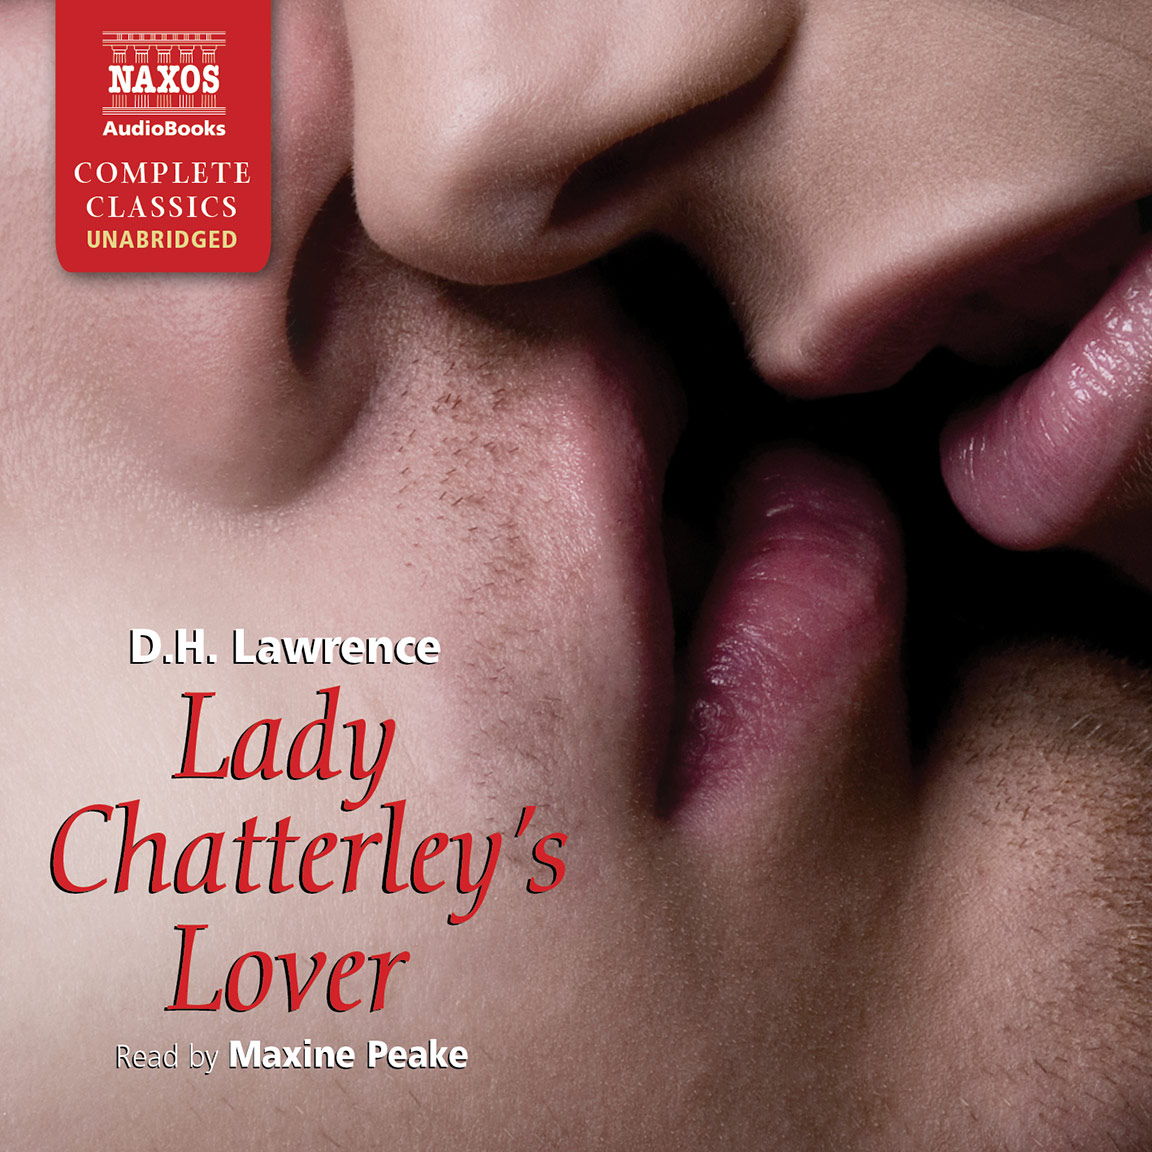 Lady Chatterley's Lover (unabridged)